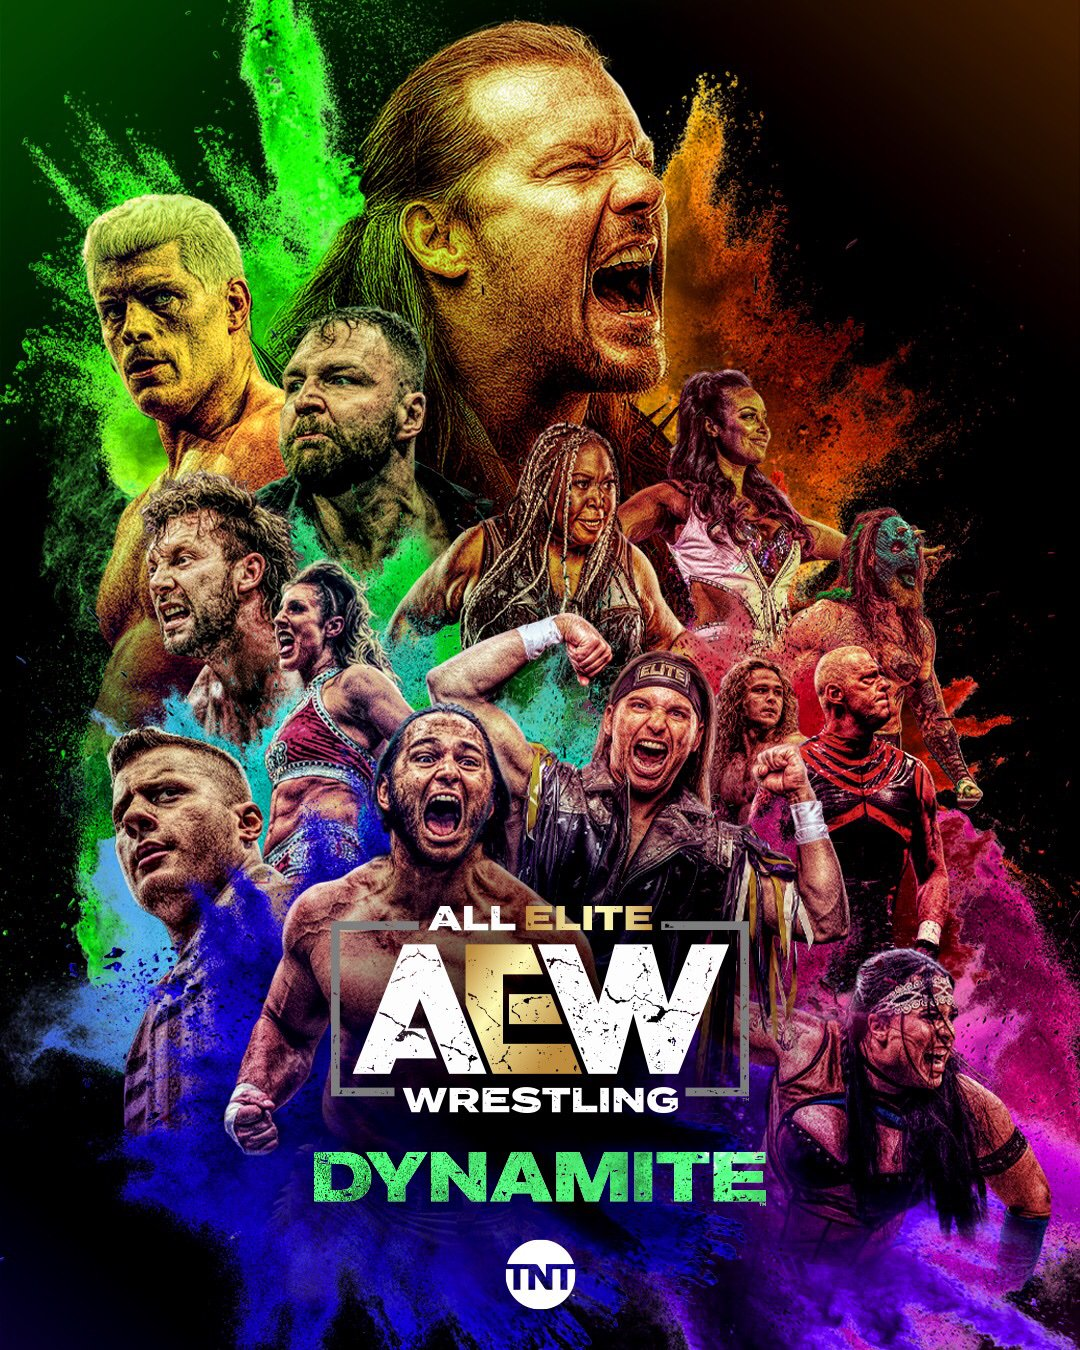 AEW Announces 'AEW DYNAMITE' – No News on Canada, Australia or The UK TV – Other AEW Bits